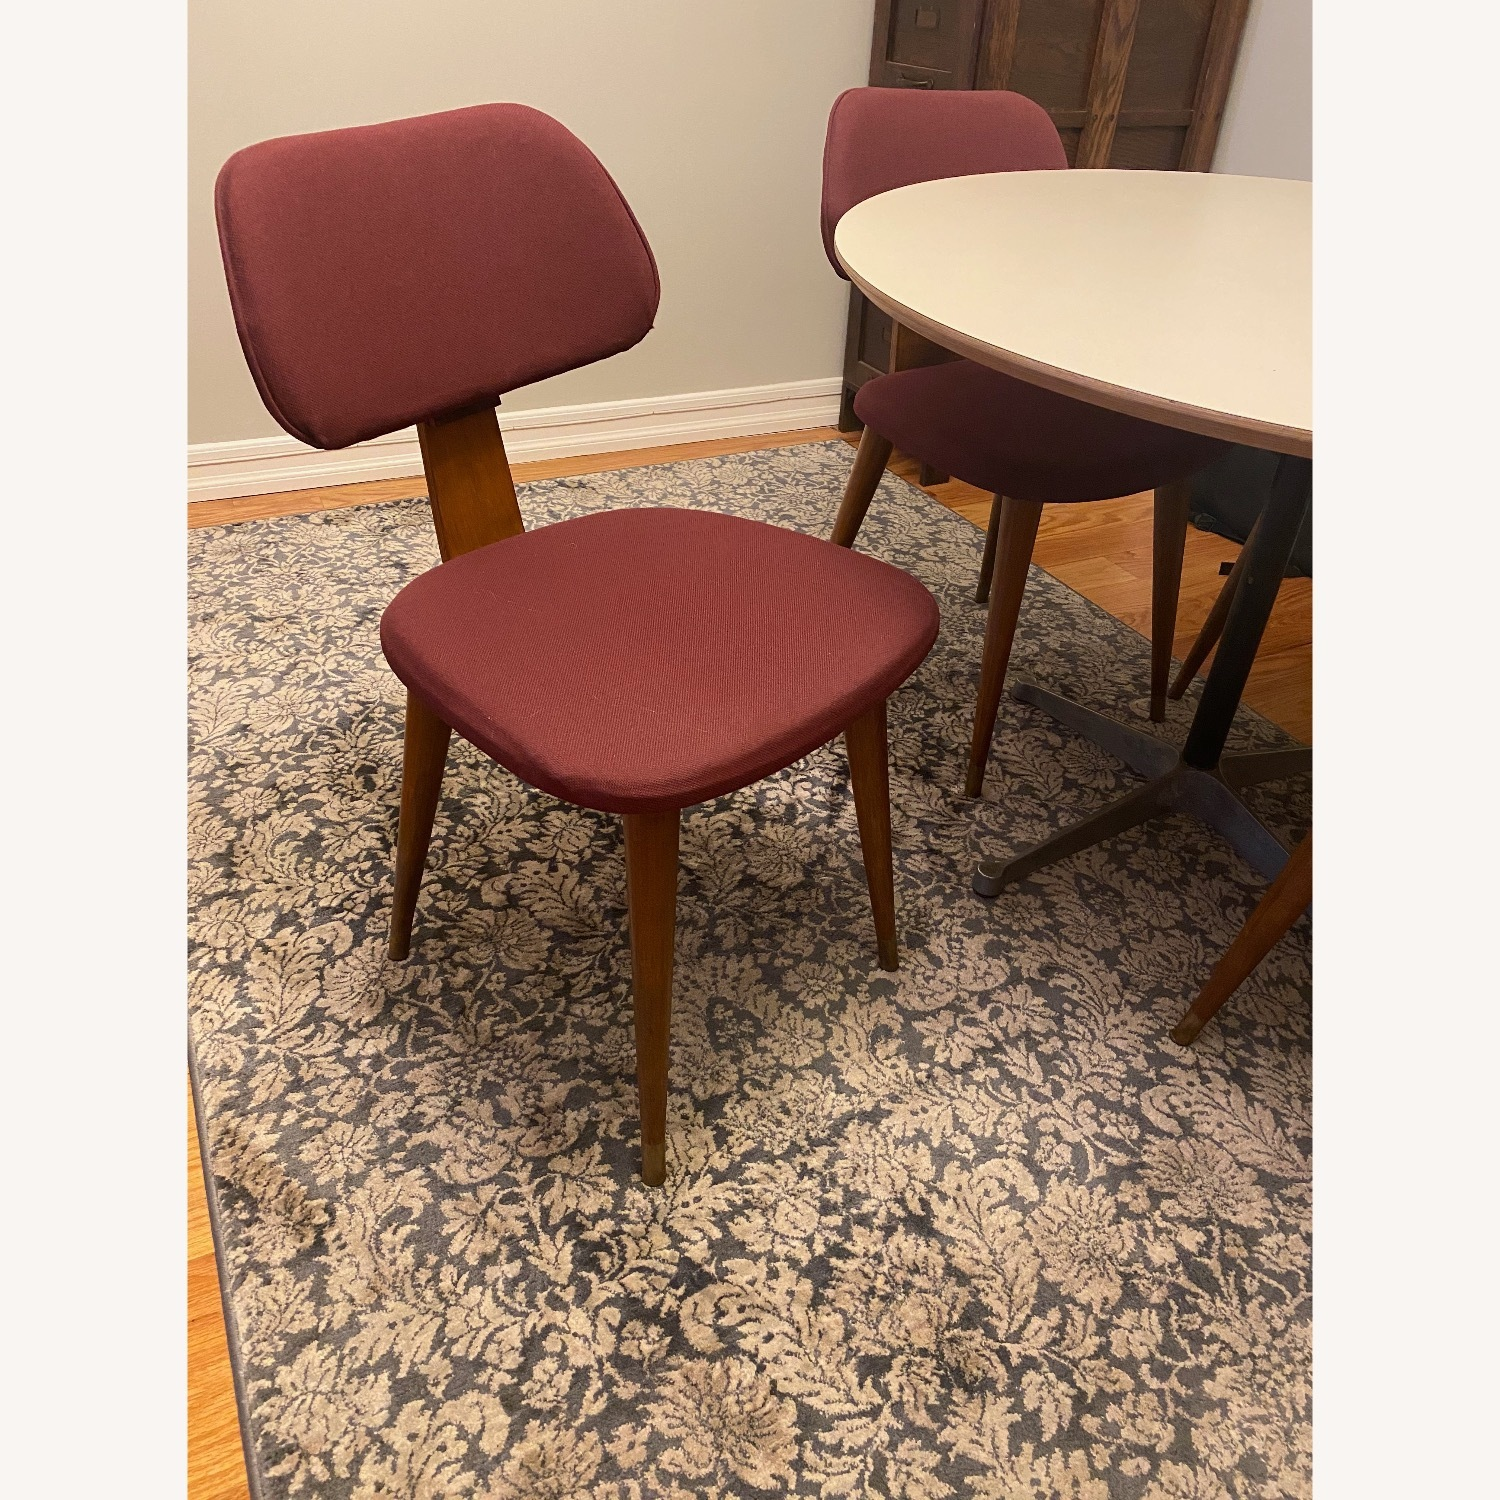 Midcentury Dining Chairs - image-3